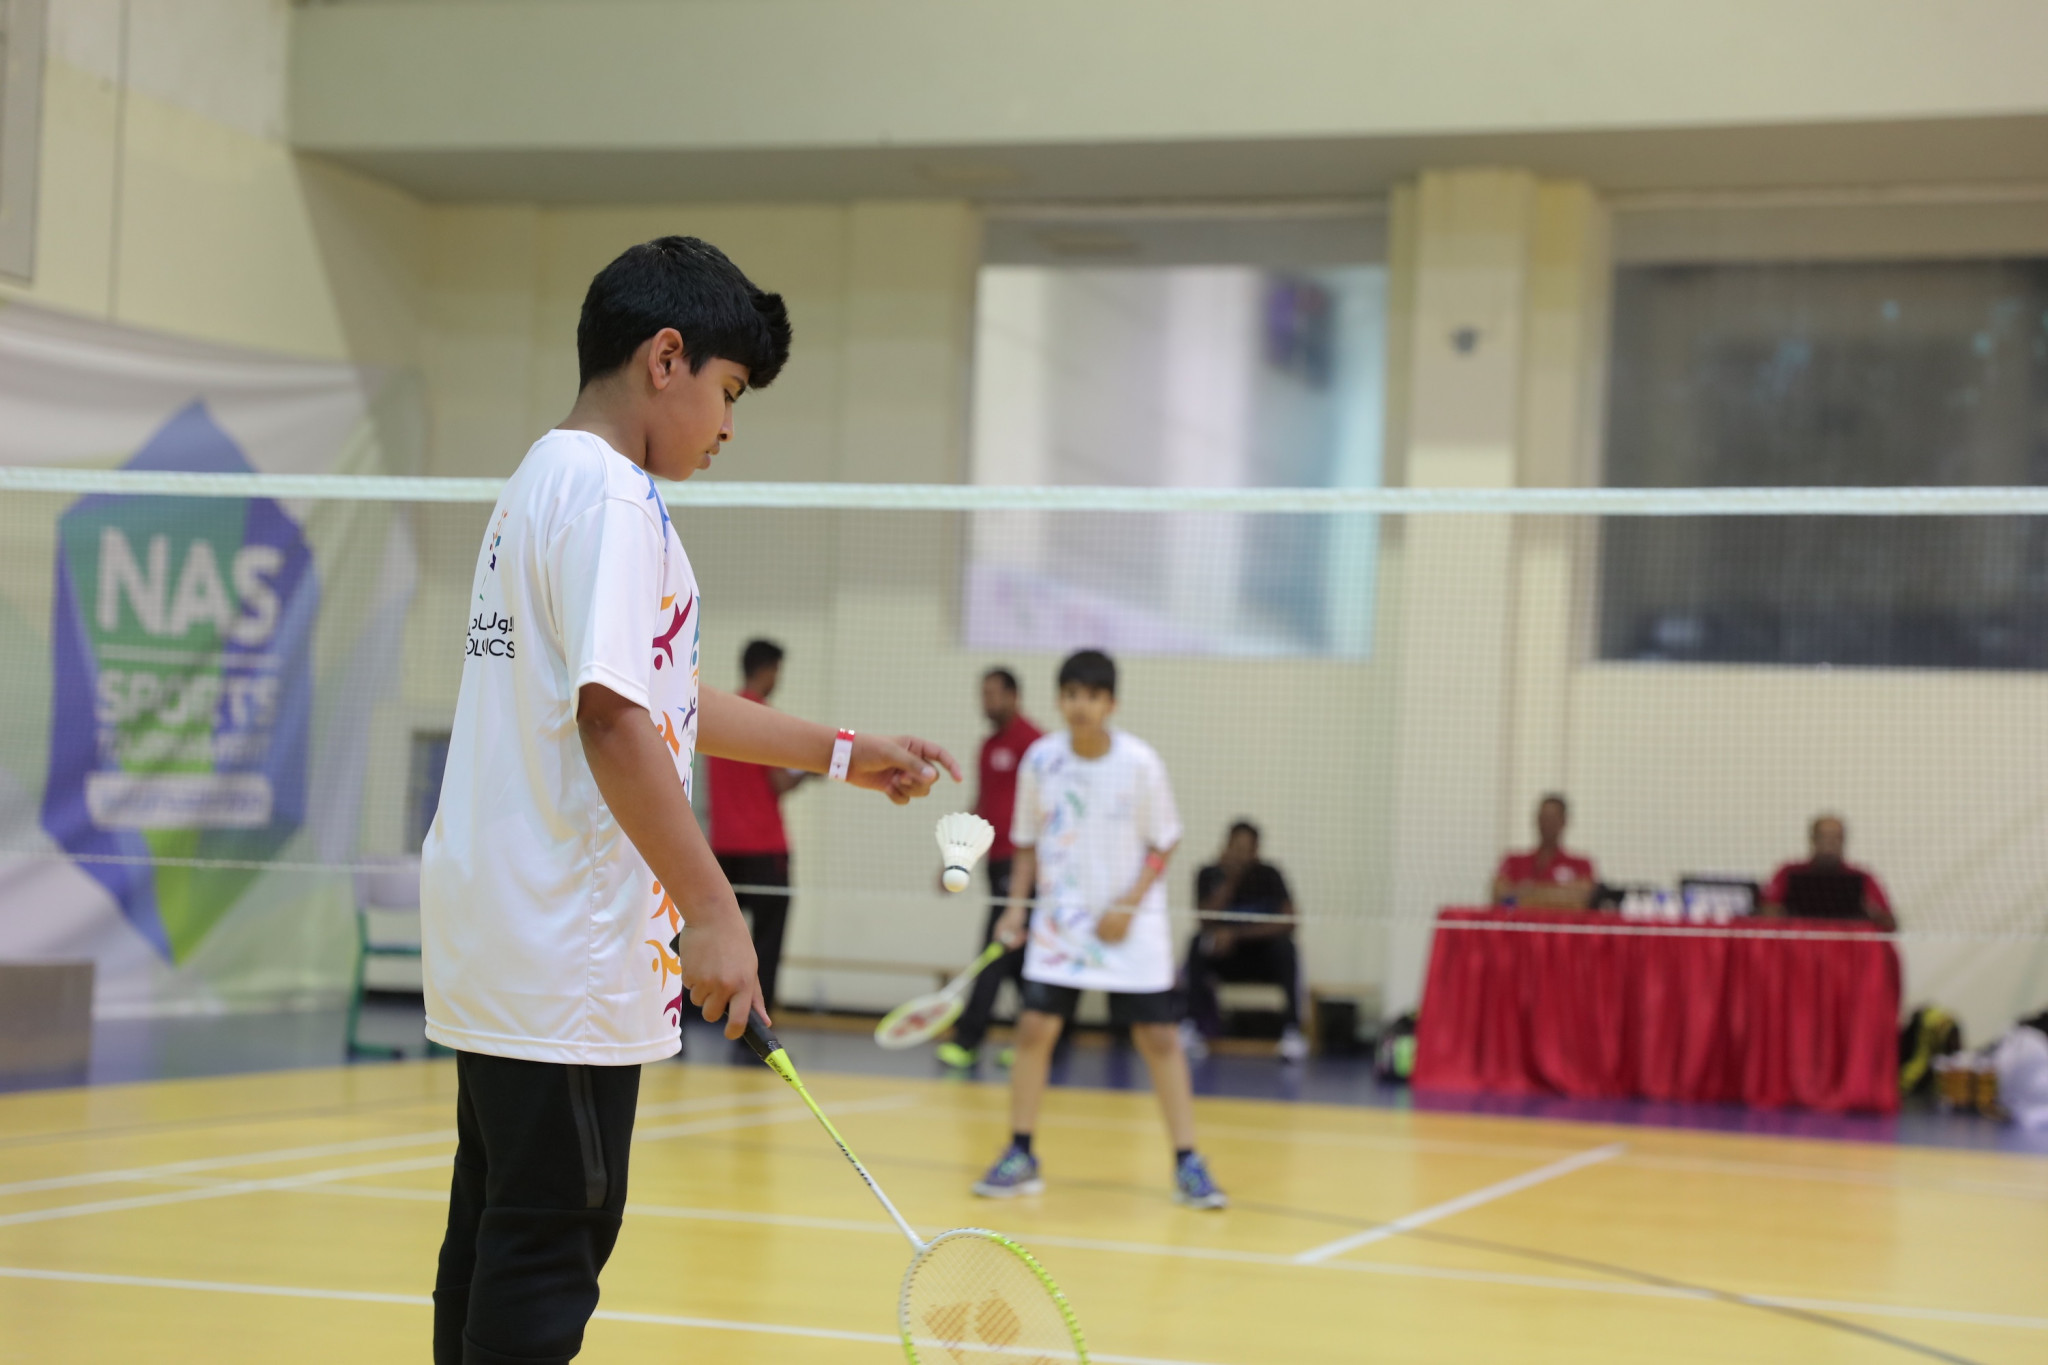 A series of sporting activities took place during the day ©UAE NOC